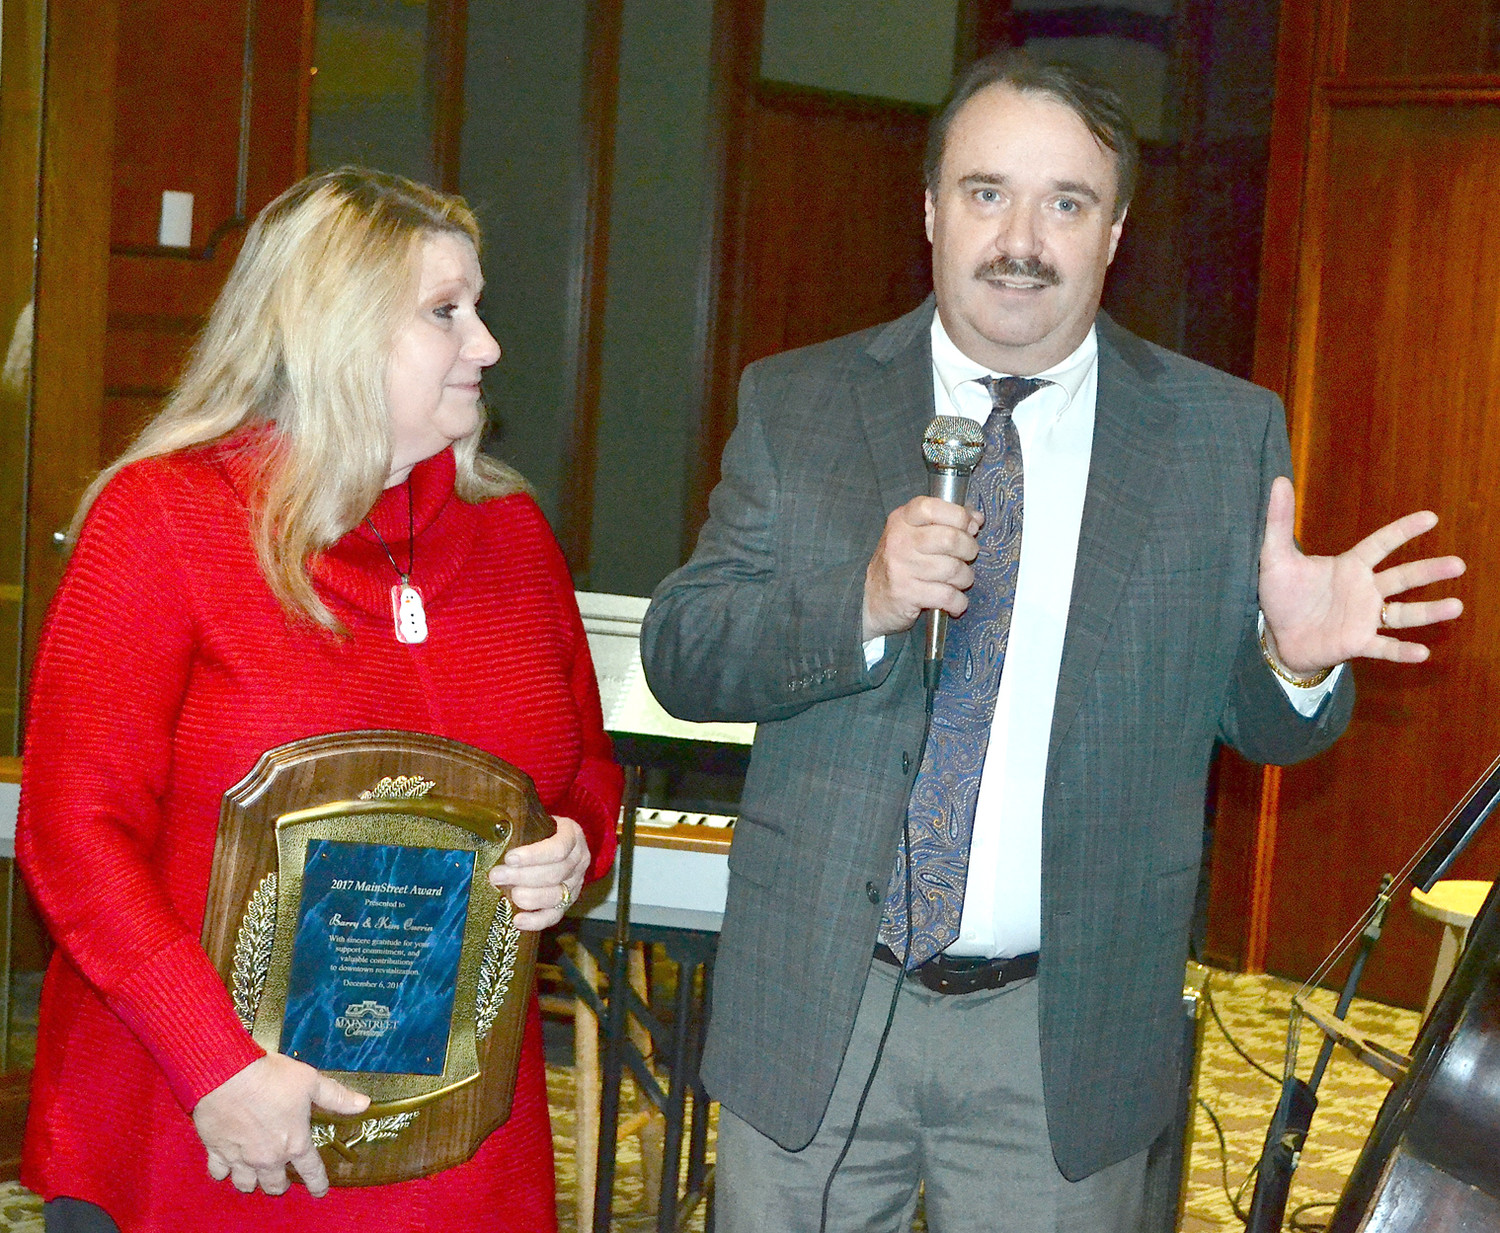 KIM AND BARRY CURRIN were surprised when named the 2017 MainStreet Cleveland Award recipients at Wednesday's Christmas party, held at the Bank of Cleveland.